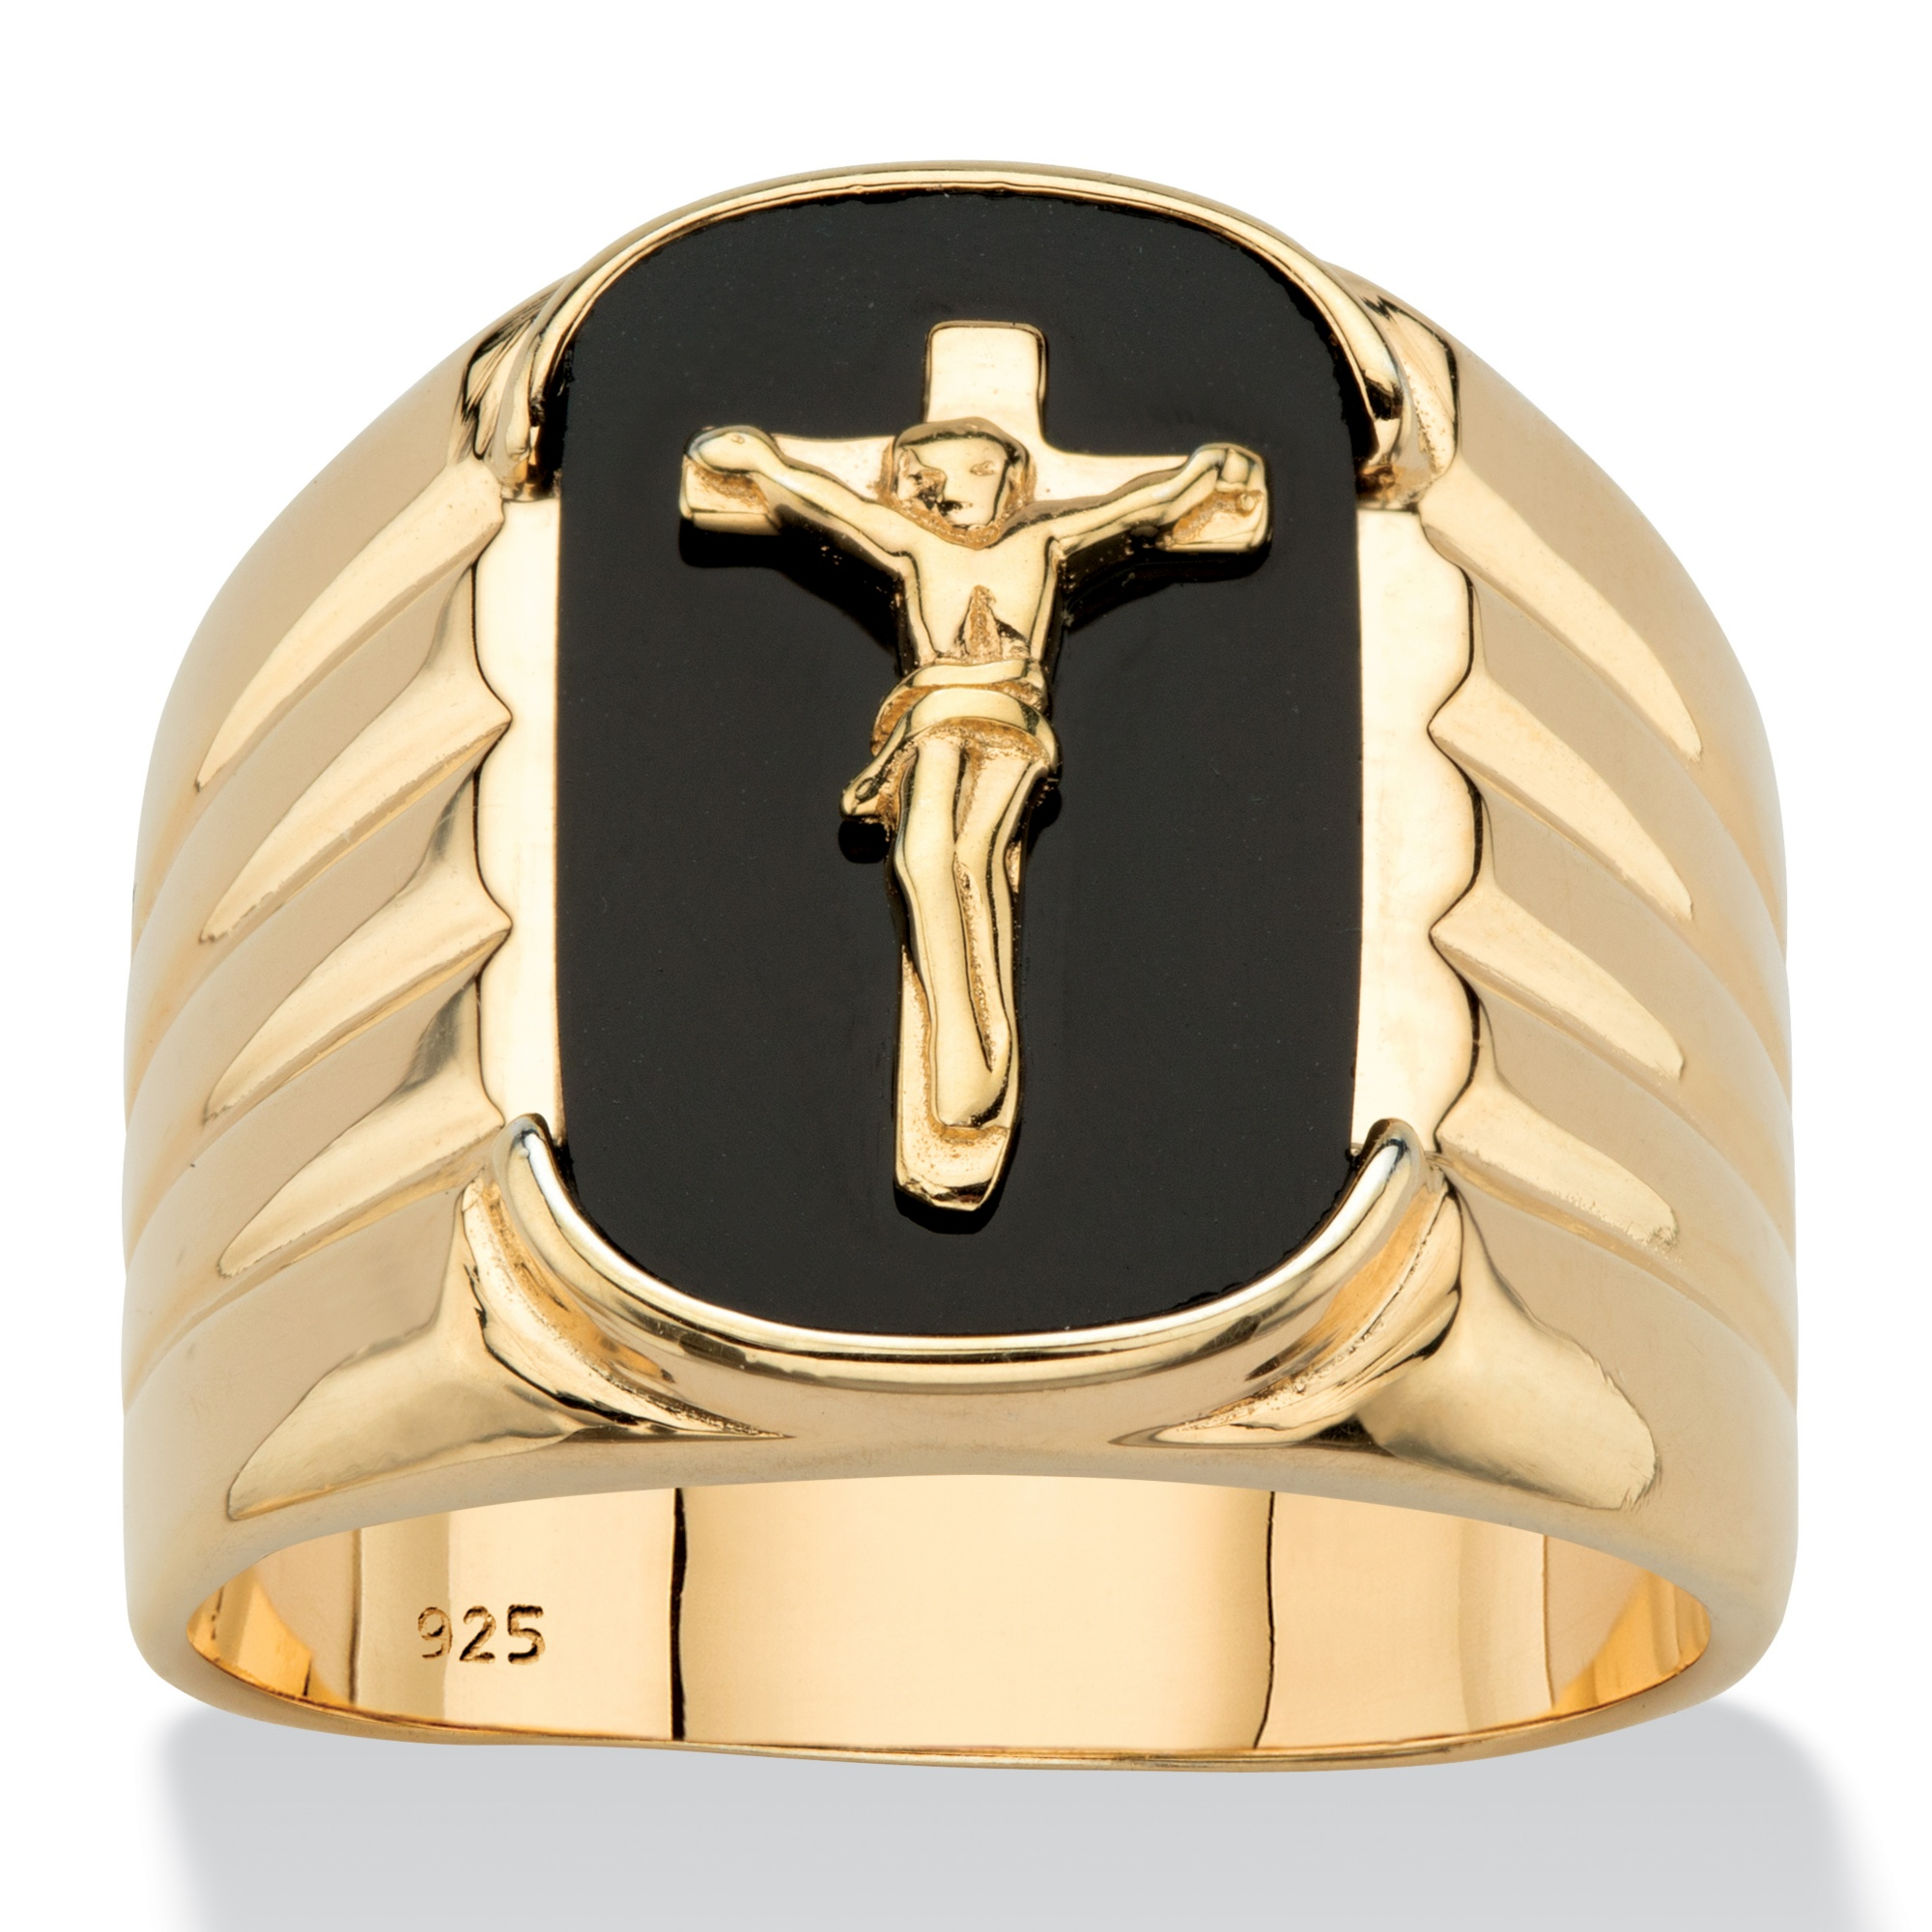 rings products men at ring cubic and gold zirconia s cross detail plated palmbeach crucifix mens round double cfm row tcw jewelry